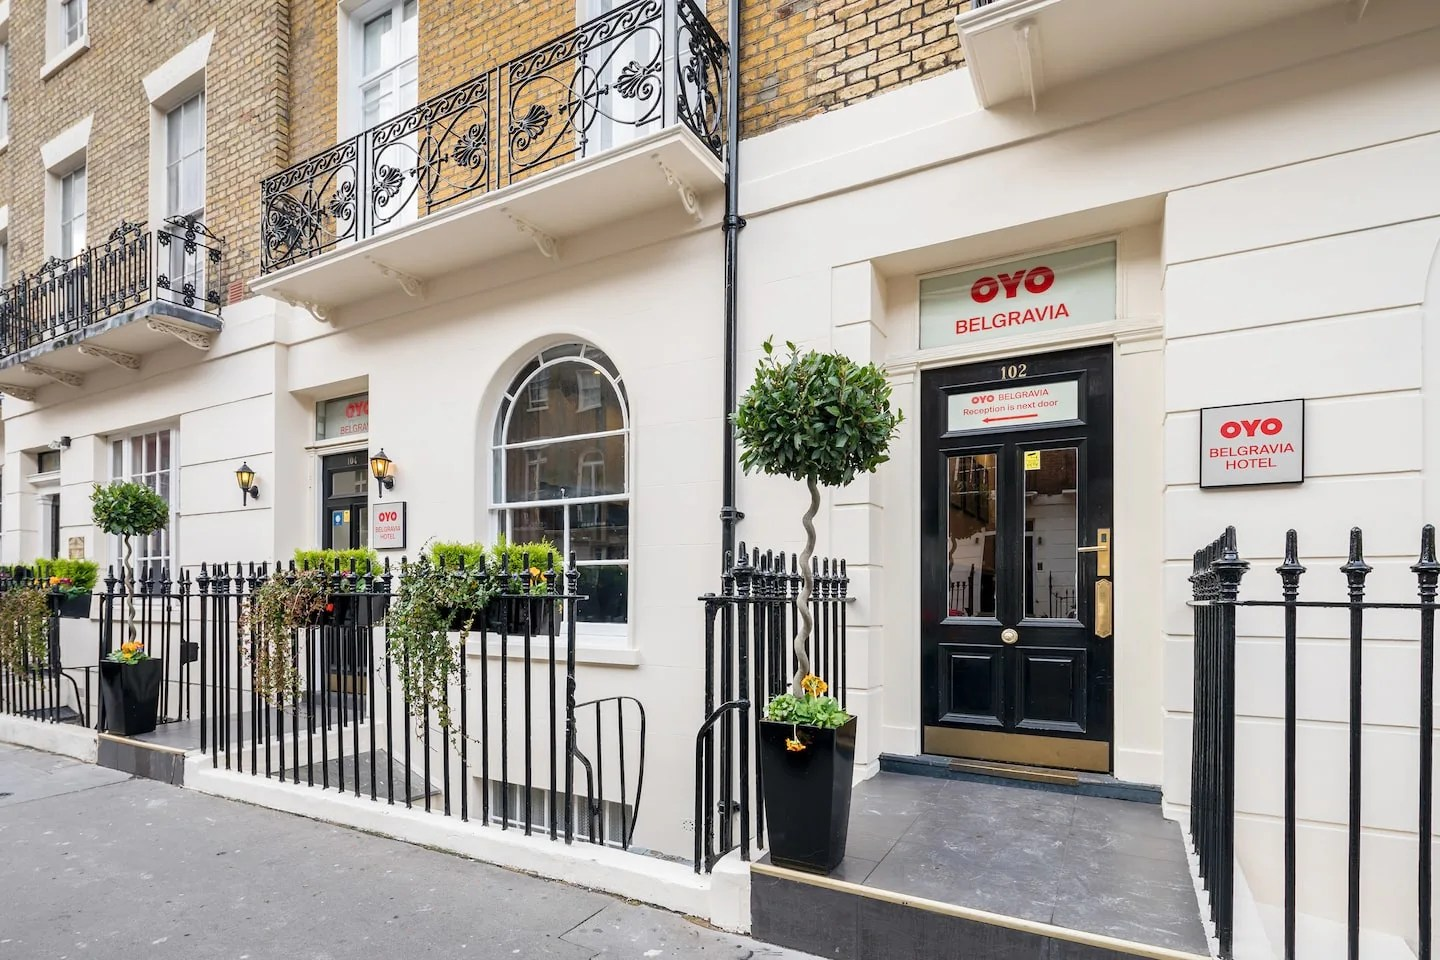 Hotel Oyo Belgravia Rooms London Trivagoie